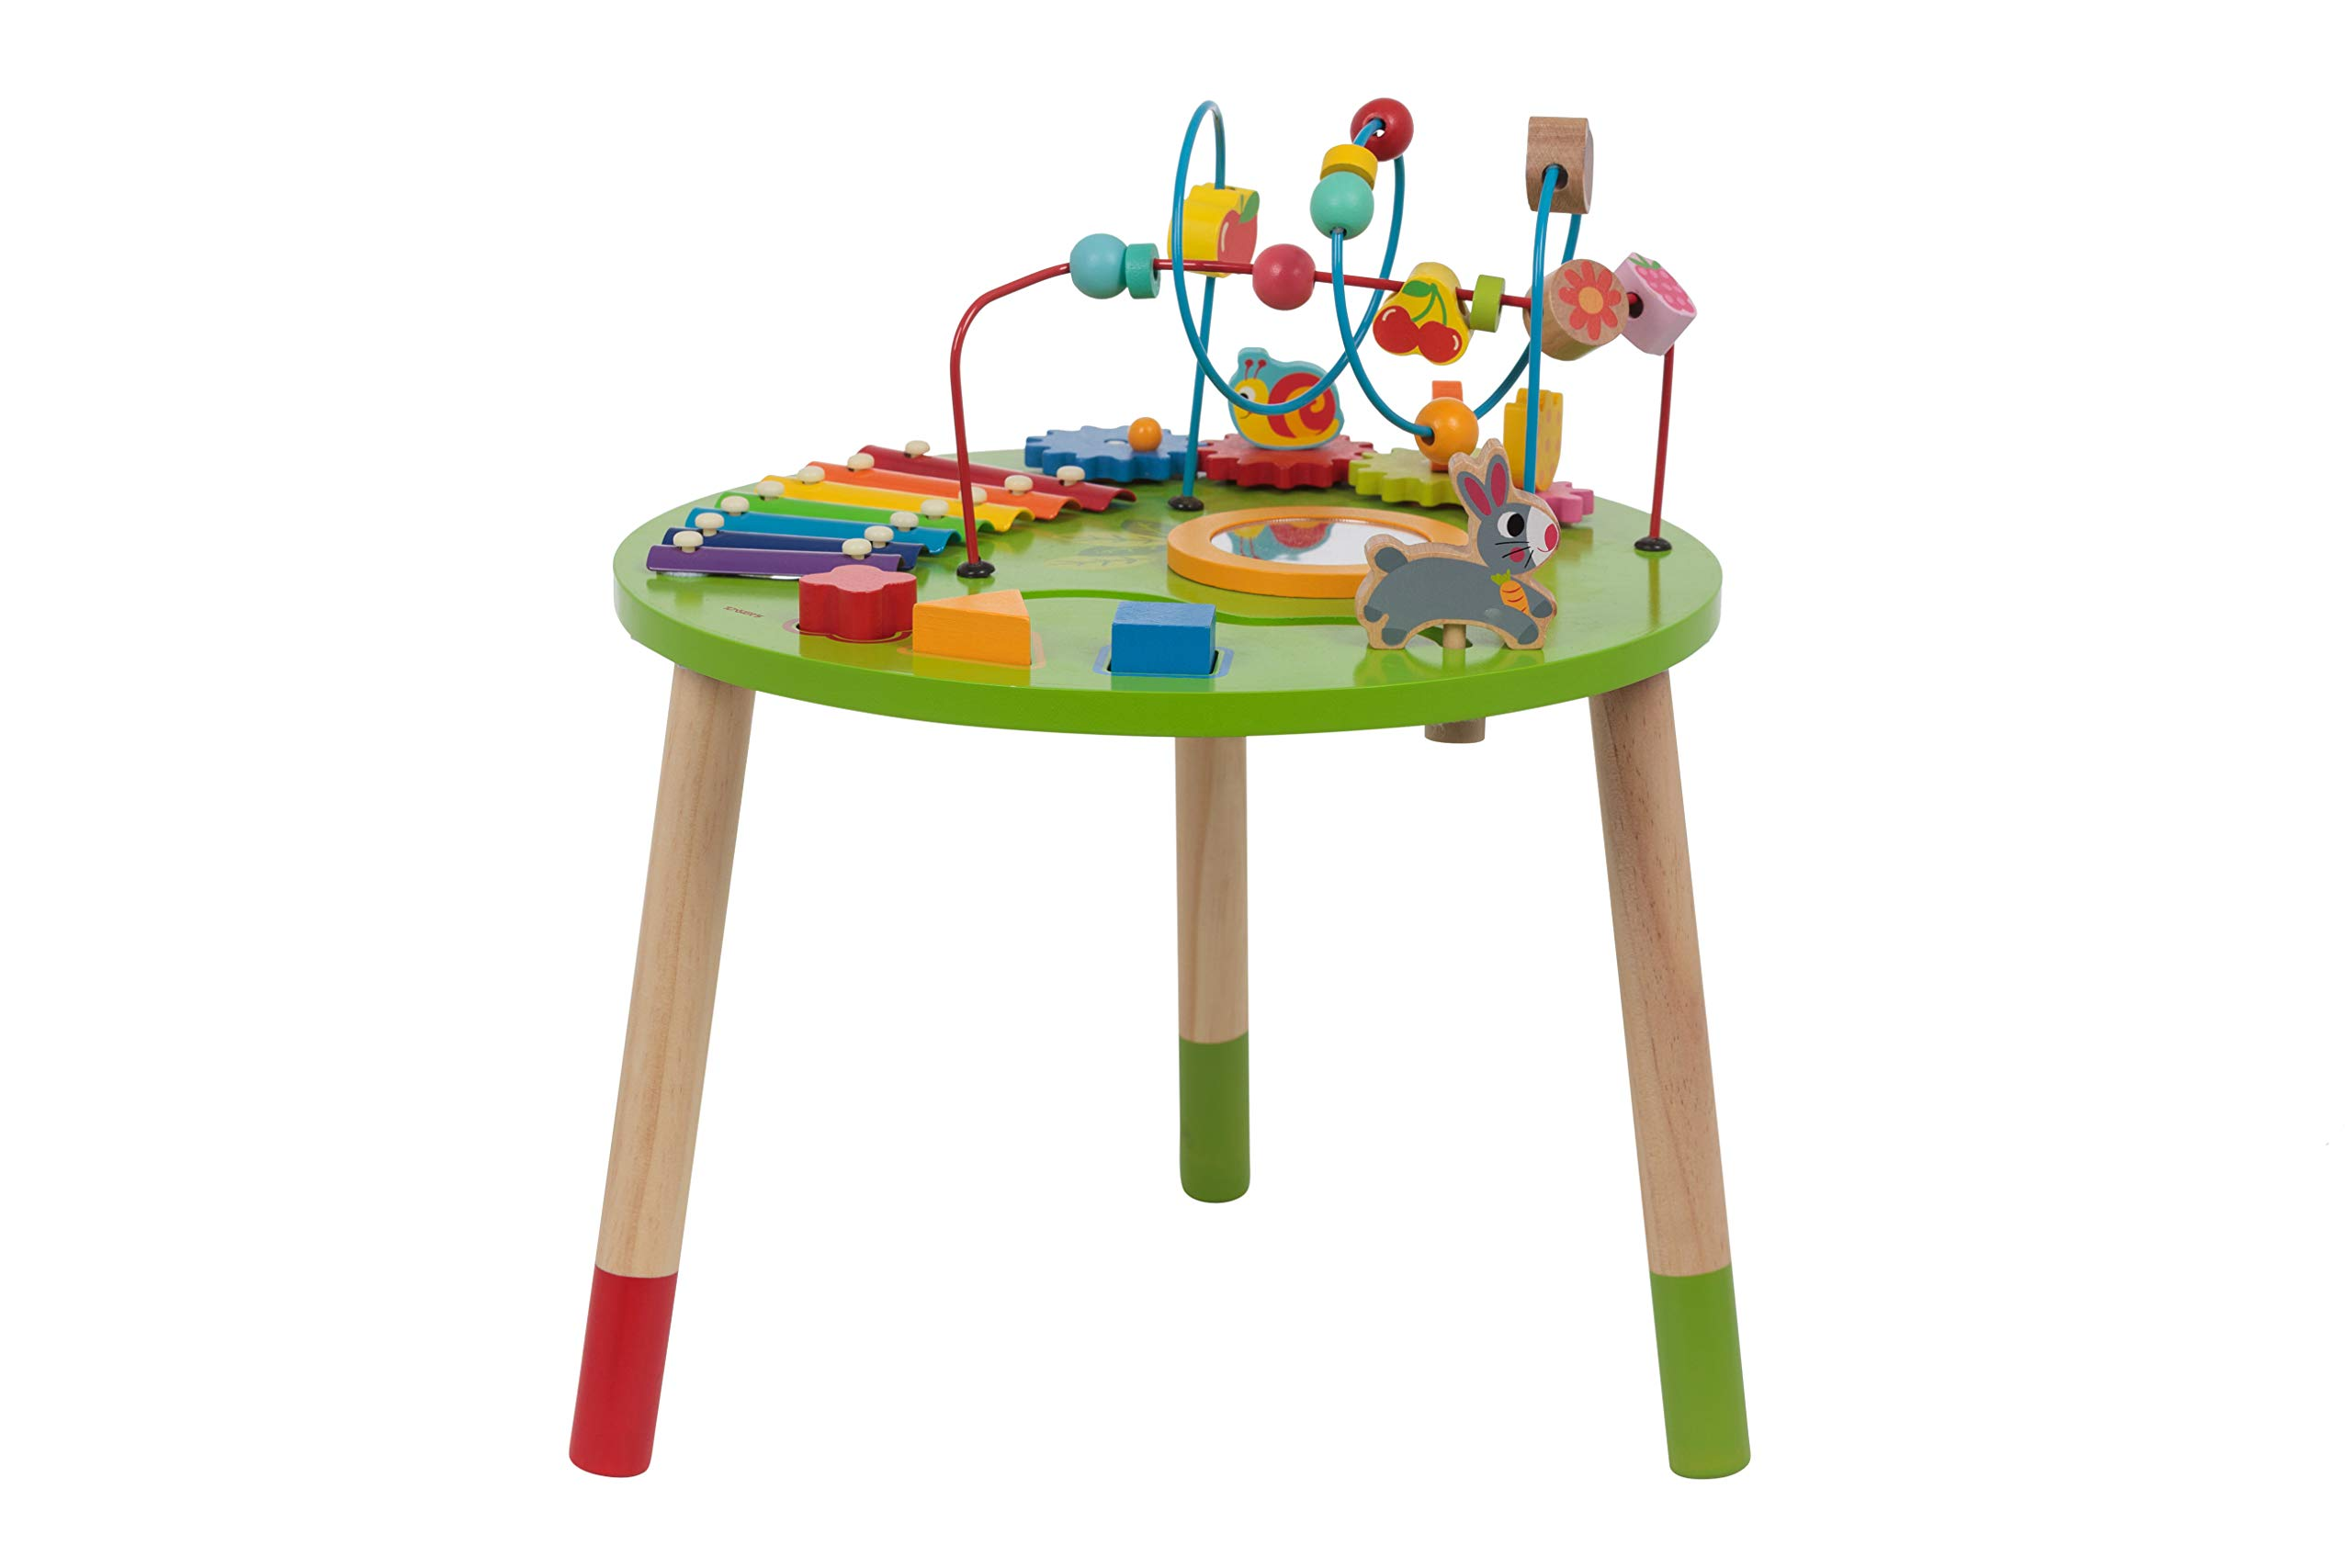 Wooden Activity Table for Toddlers | Multi-Purpose Children's Educational Learning Play Toy Set | Playset Easel with Bead Maze, Shape Block Puzzle for 1 Year Old Boy and Girls | ED435